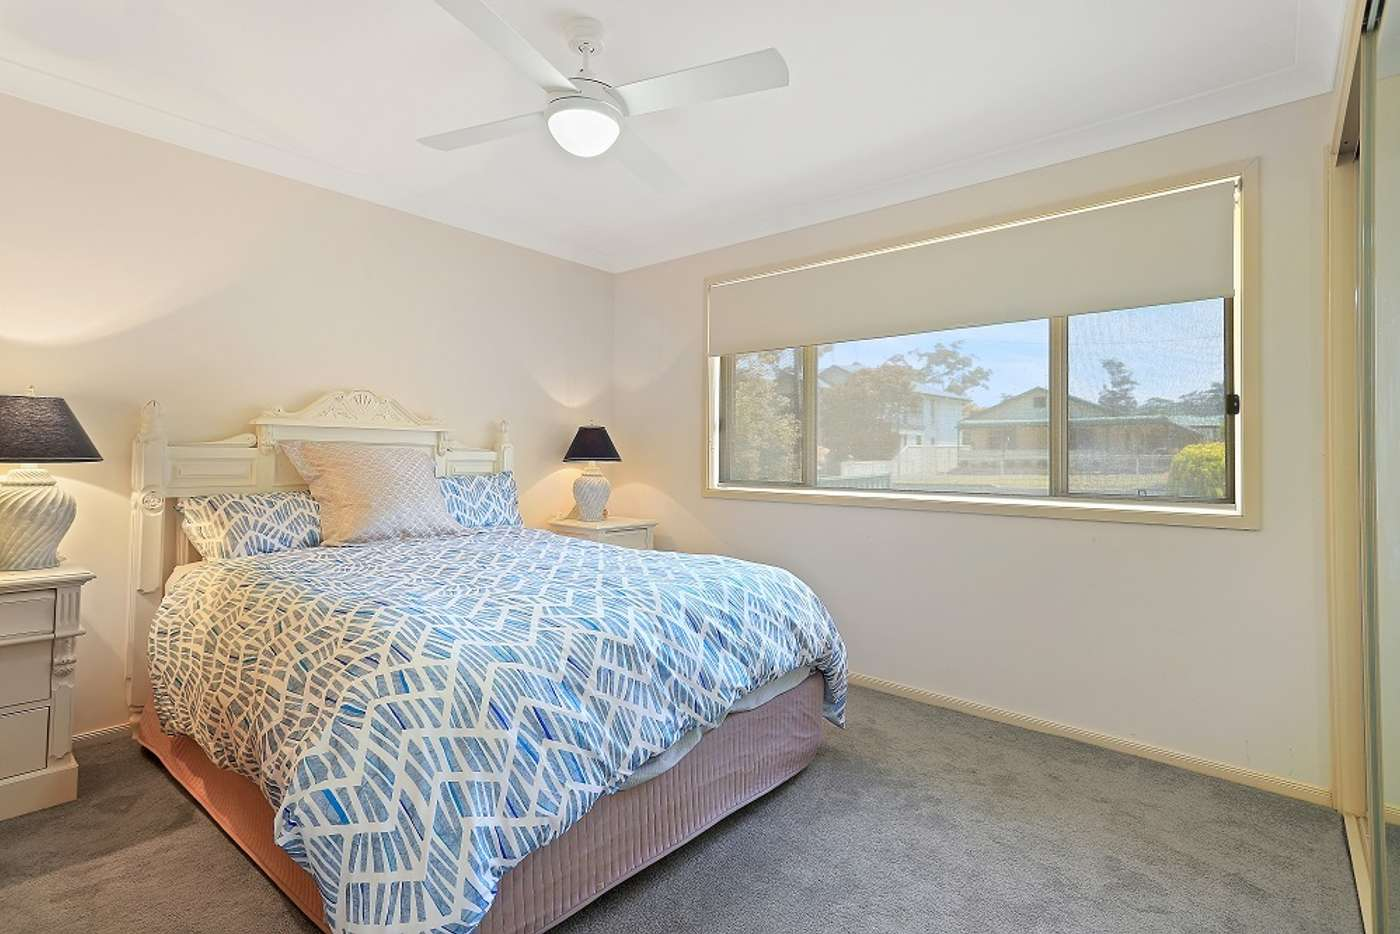 Fifth view of Homely house listing, 26 Karne Street, Sanctuary Point NSW 2540